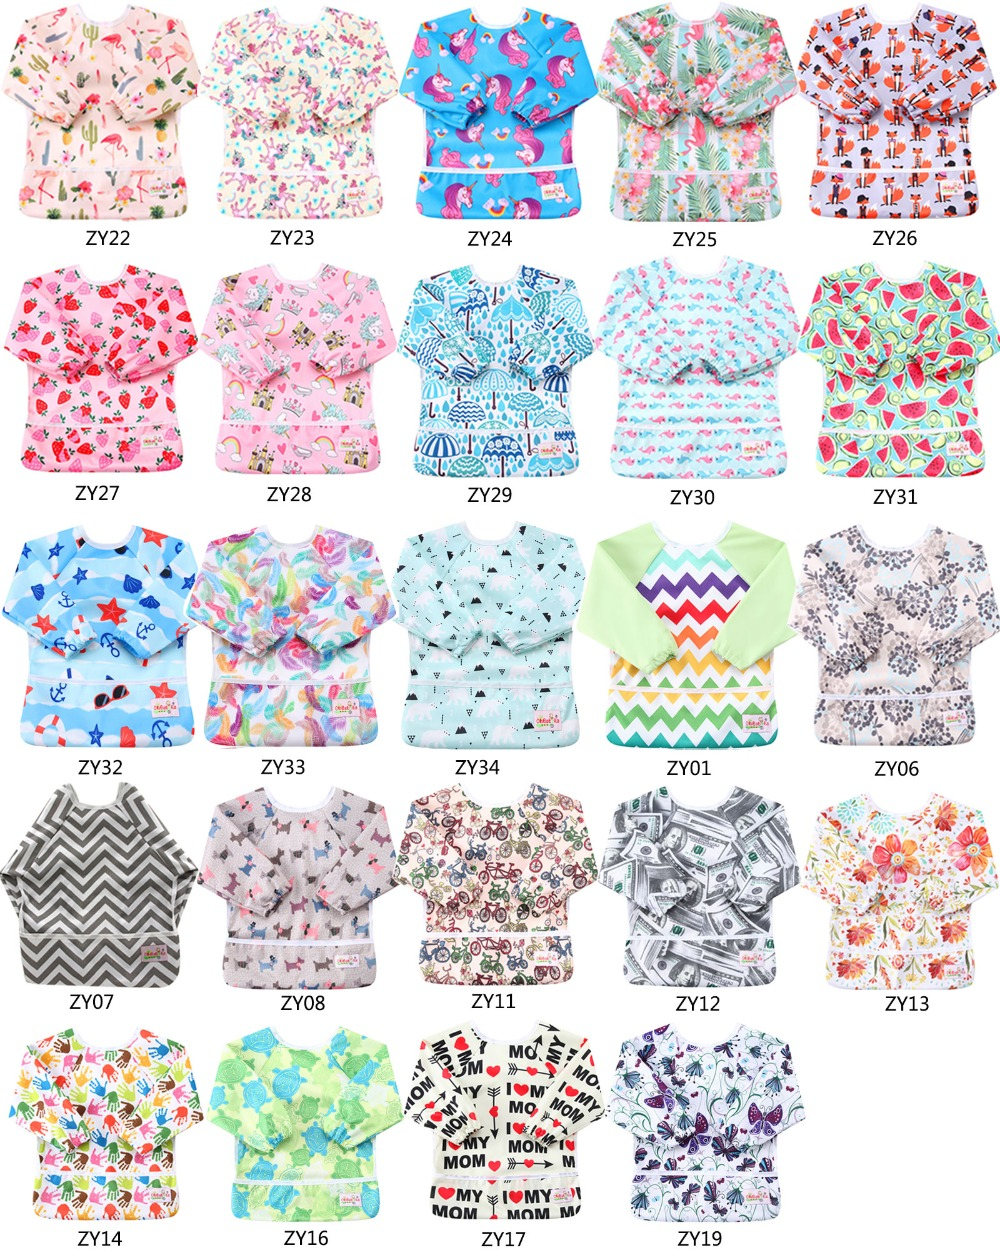 100 Pack Unicorn Reusable Baby Bibs for Boys Waterproof Baby Bibs with Sleeves Unisex Fashion Baby Pocket Bibs Feeding Clothes ...